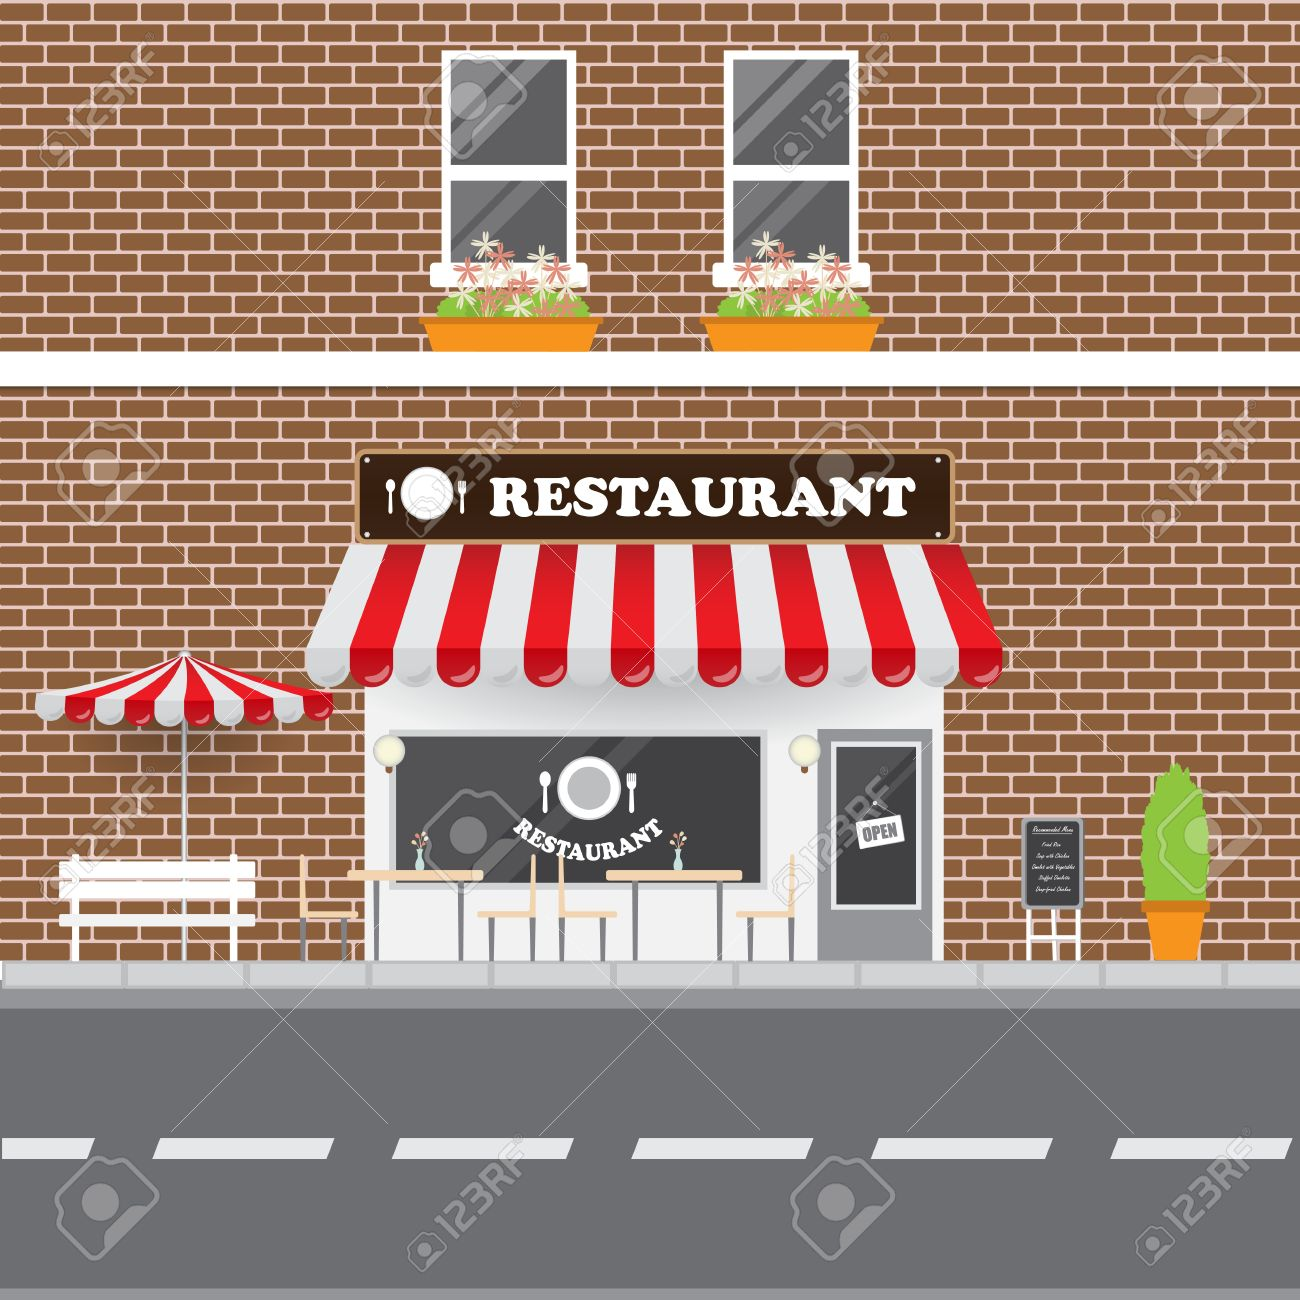 Restaurant Facade With Street Landscape Brick Building Retro Style Banque Dimages